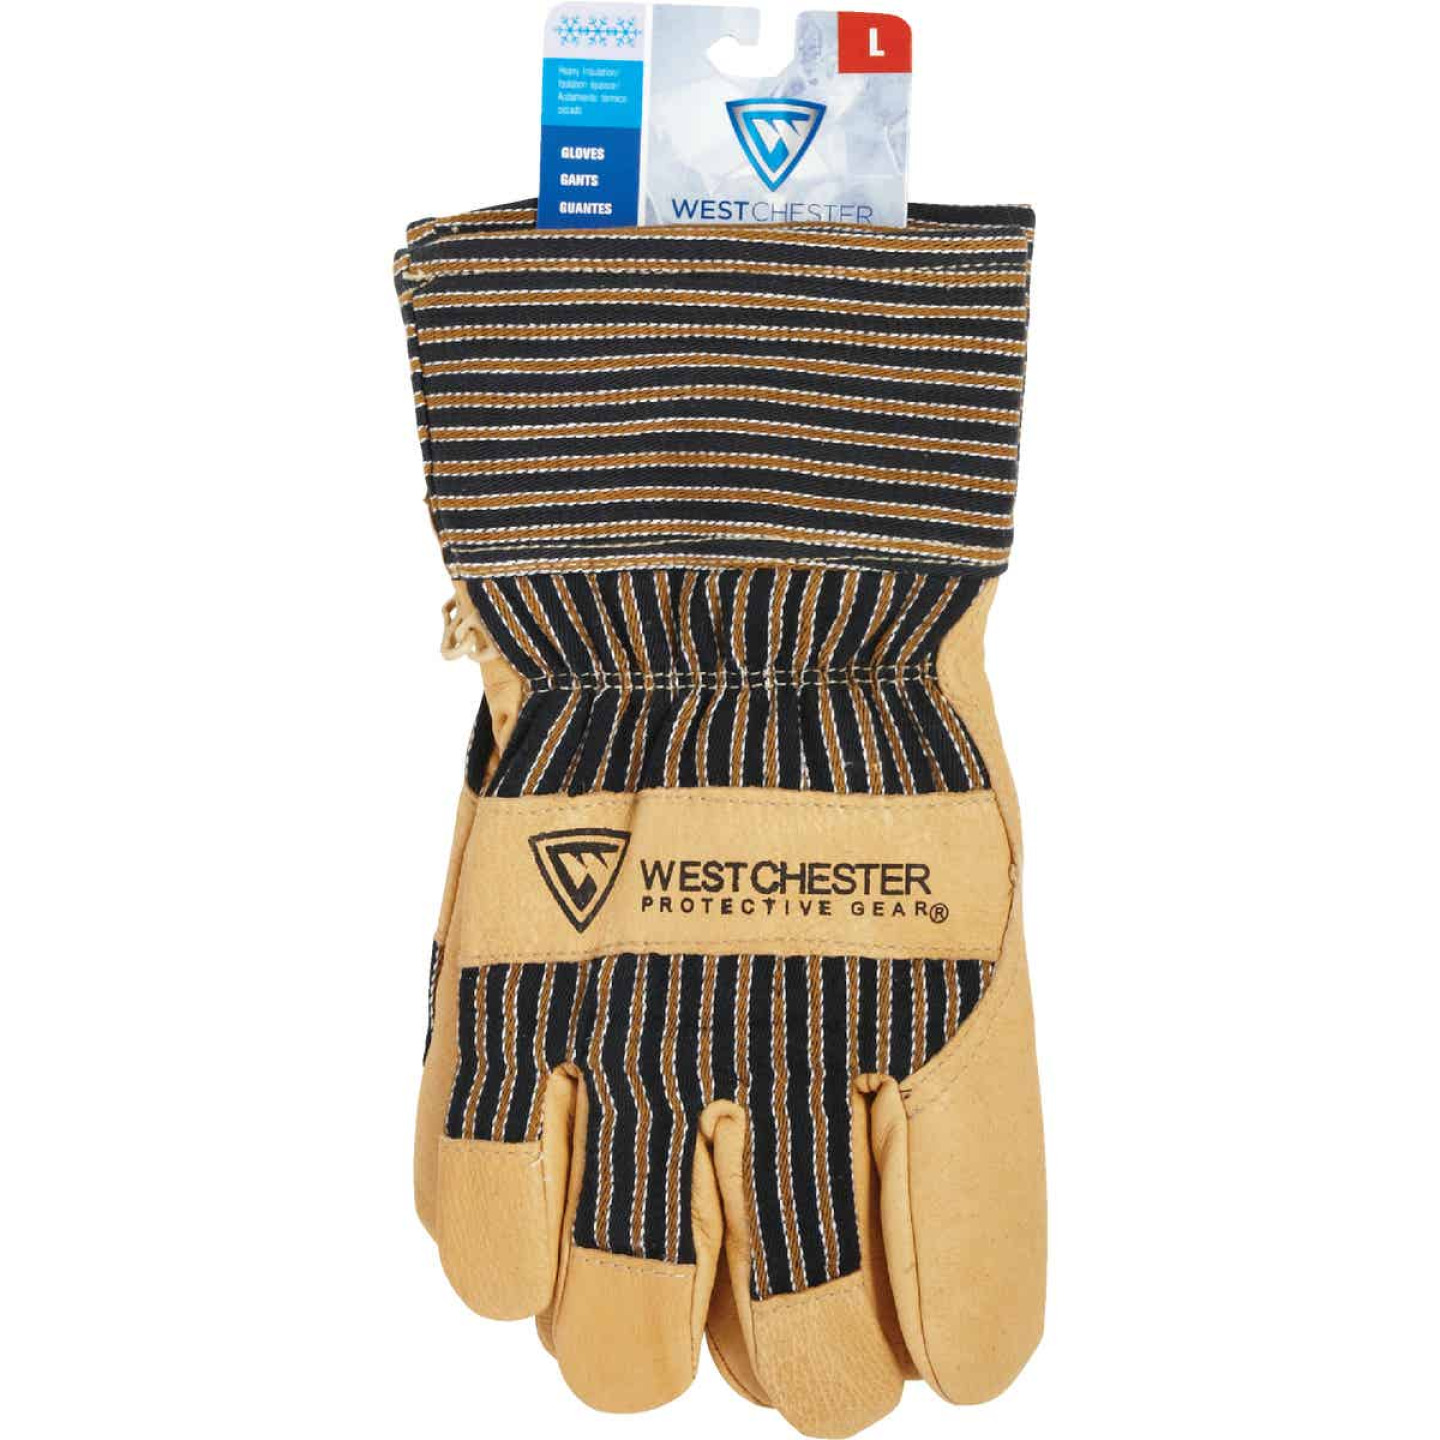 West Chester Protective Gear Men's Large Grain Pigskin Leather Work Glove Image 2